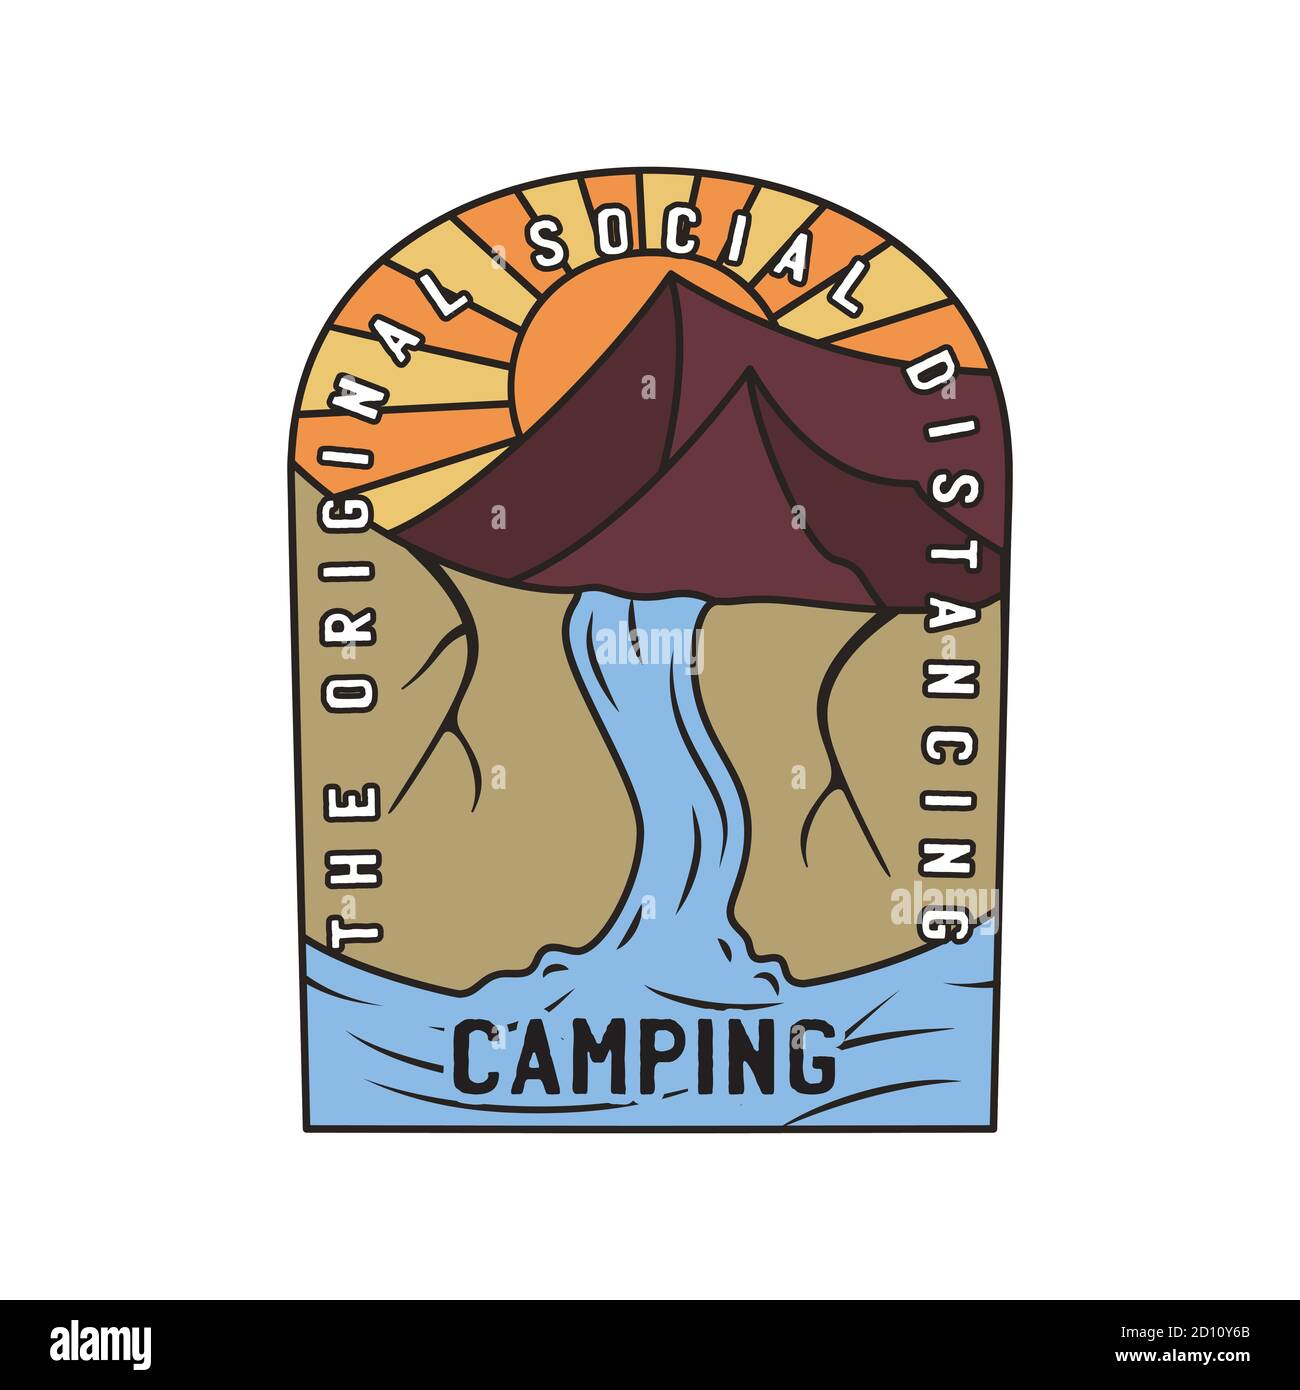 Vintage camping logo, adventure emblem illustration design. Outdoor mountain life label with waterfall scene and text - Original social distancing Stock Vector